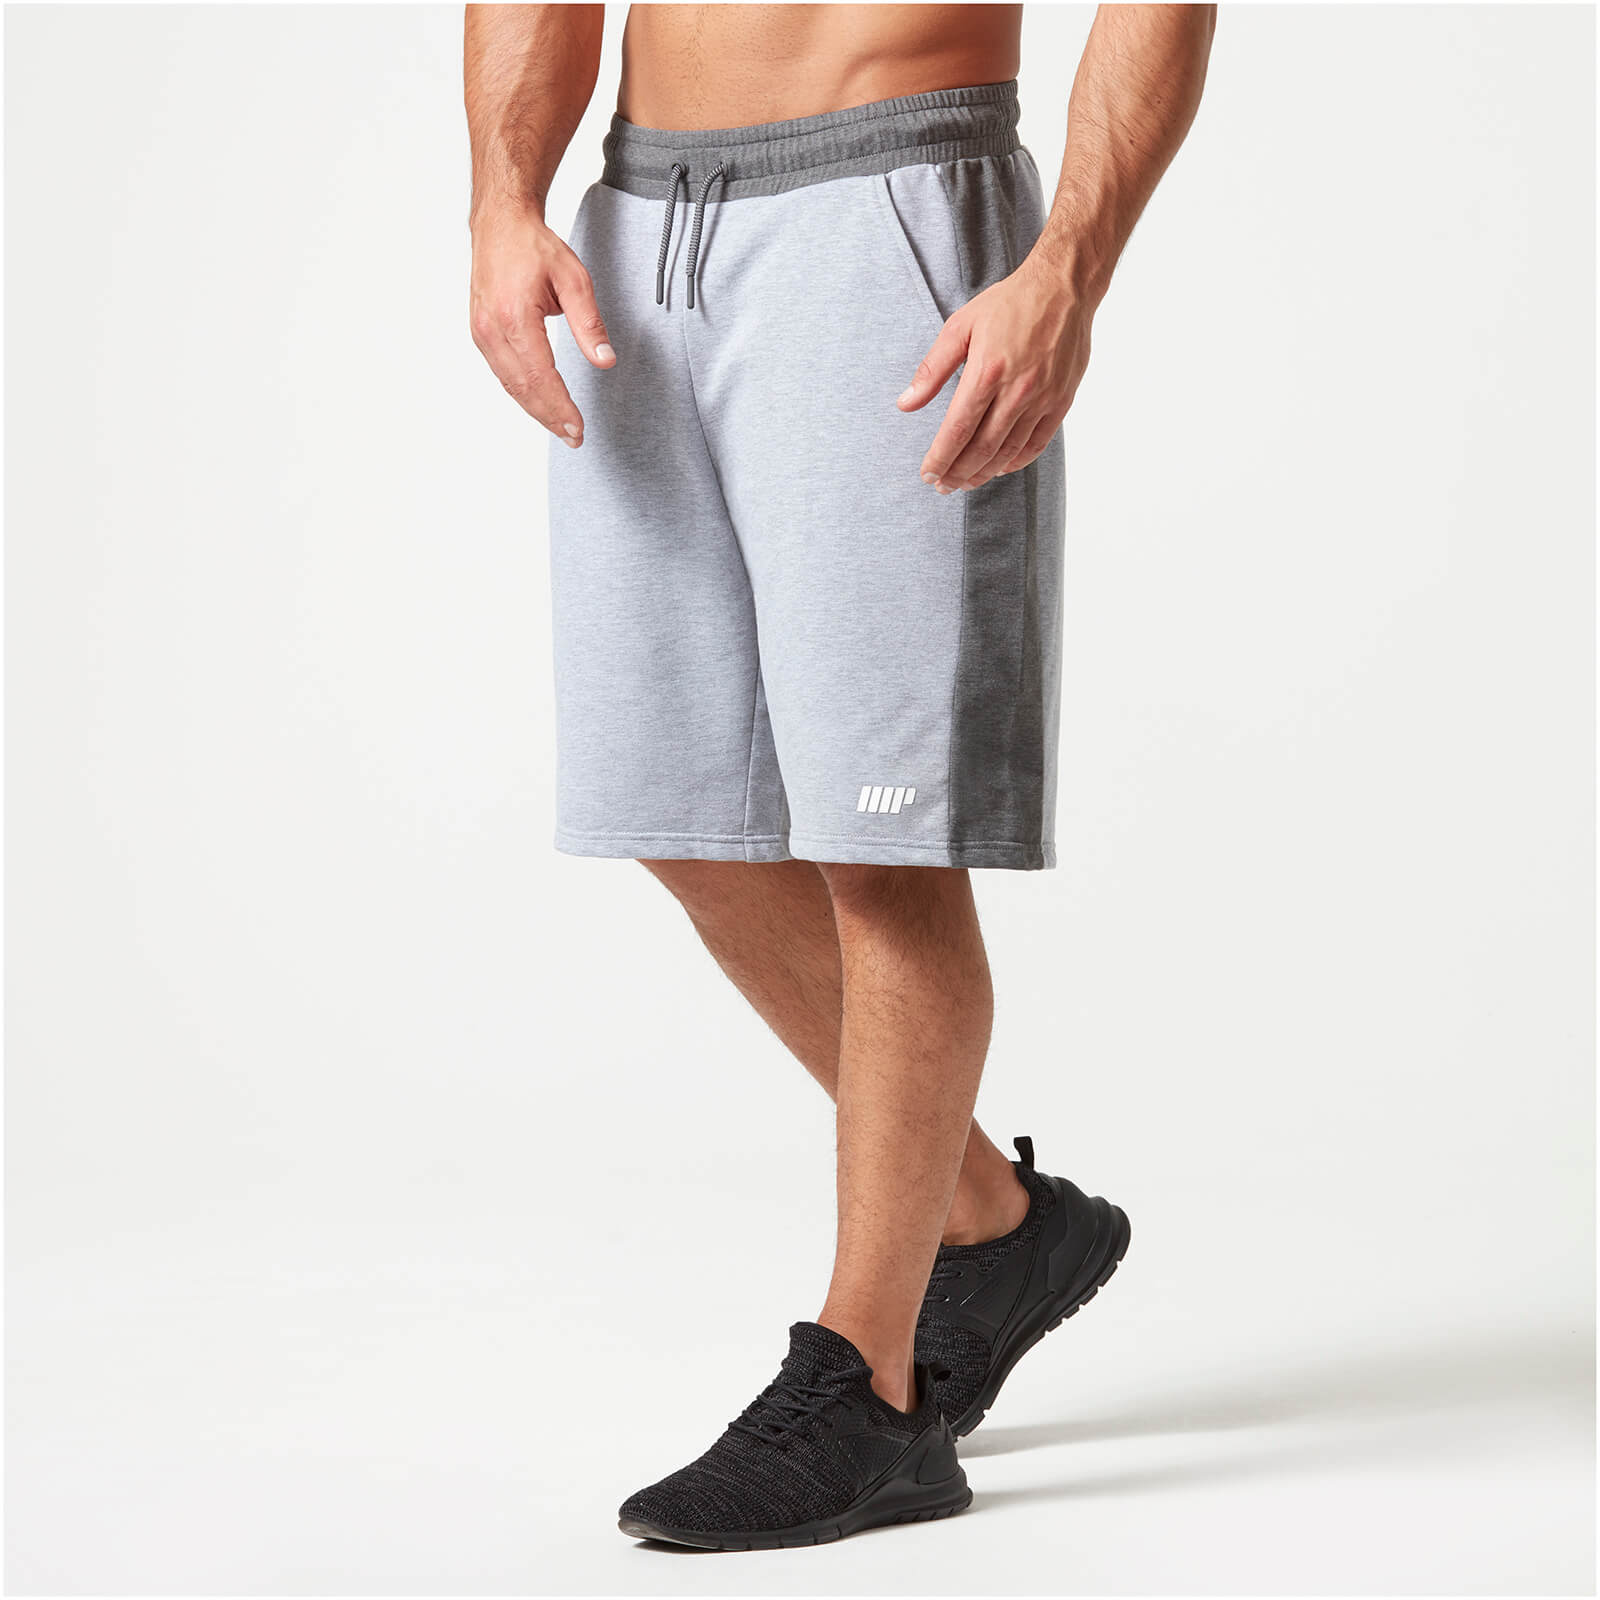 Superlite Shorts - Grey Marl - S